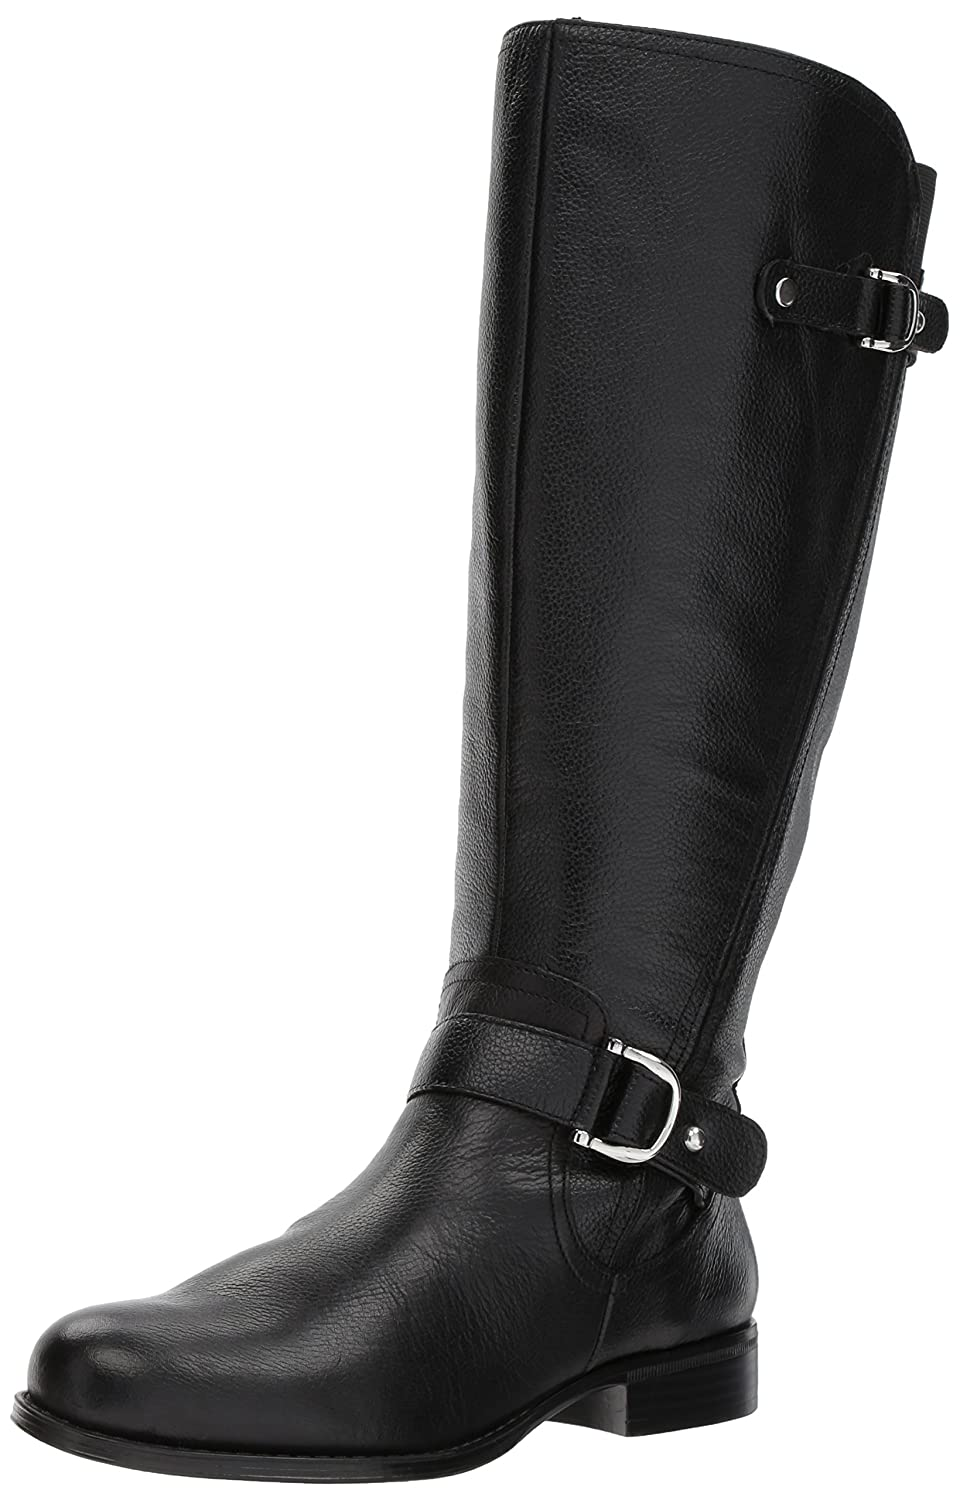 Naturalizer Women's Jenelle Wide Calf Riding Boot B06XBPXP7N 7 B(M) US|Black